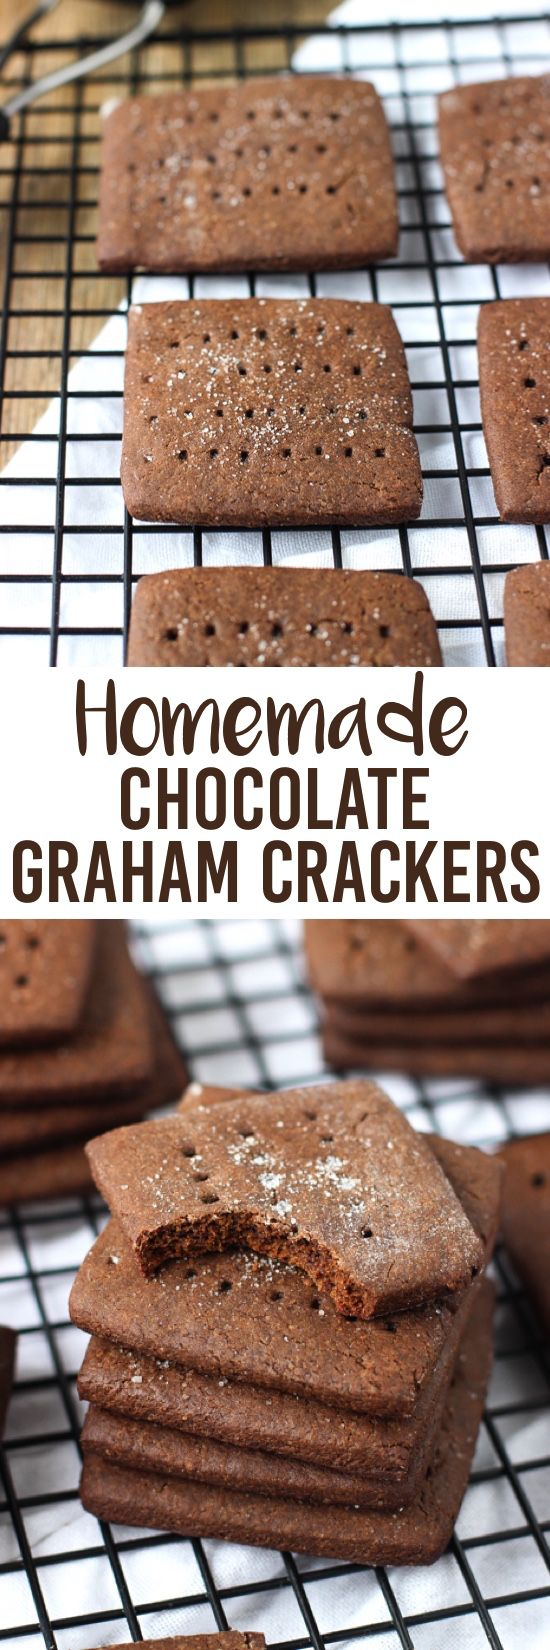 Chocolate graham crackers, Homemade chocolate and Graham crackers on ...